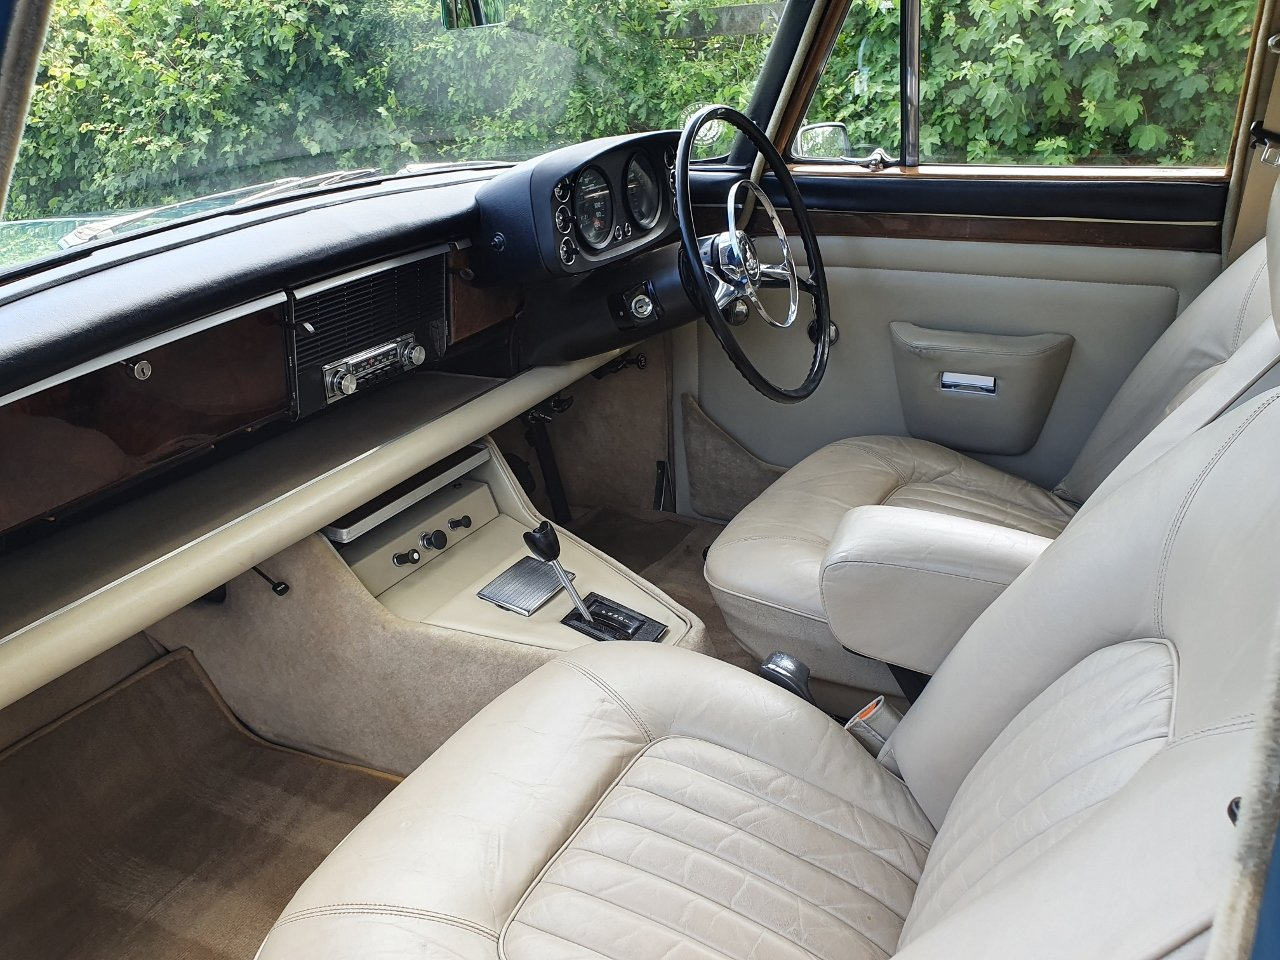 1972 Superb Rover P5B - Amazing history - Titled owner etc SOLD (picture 7 of 10)